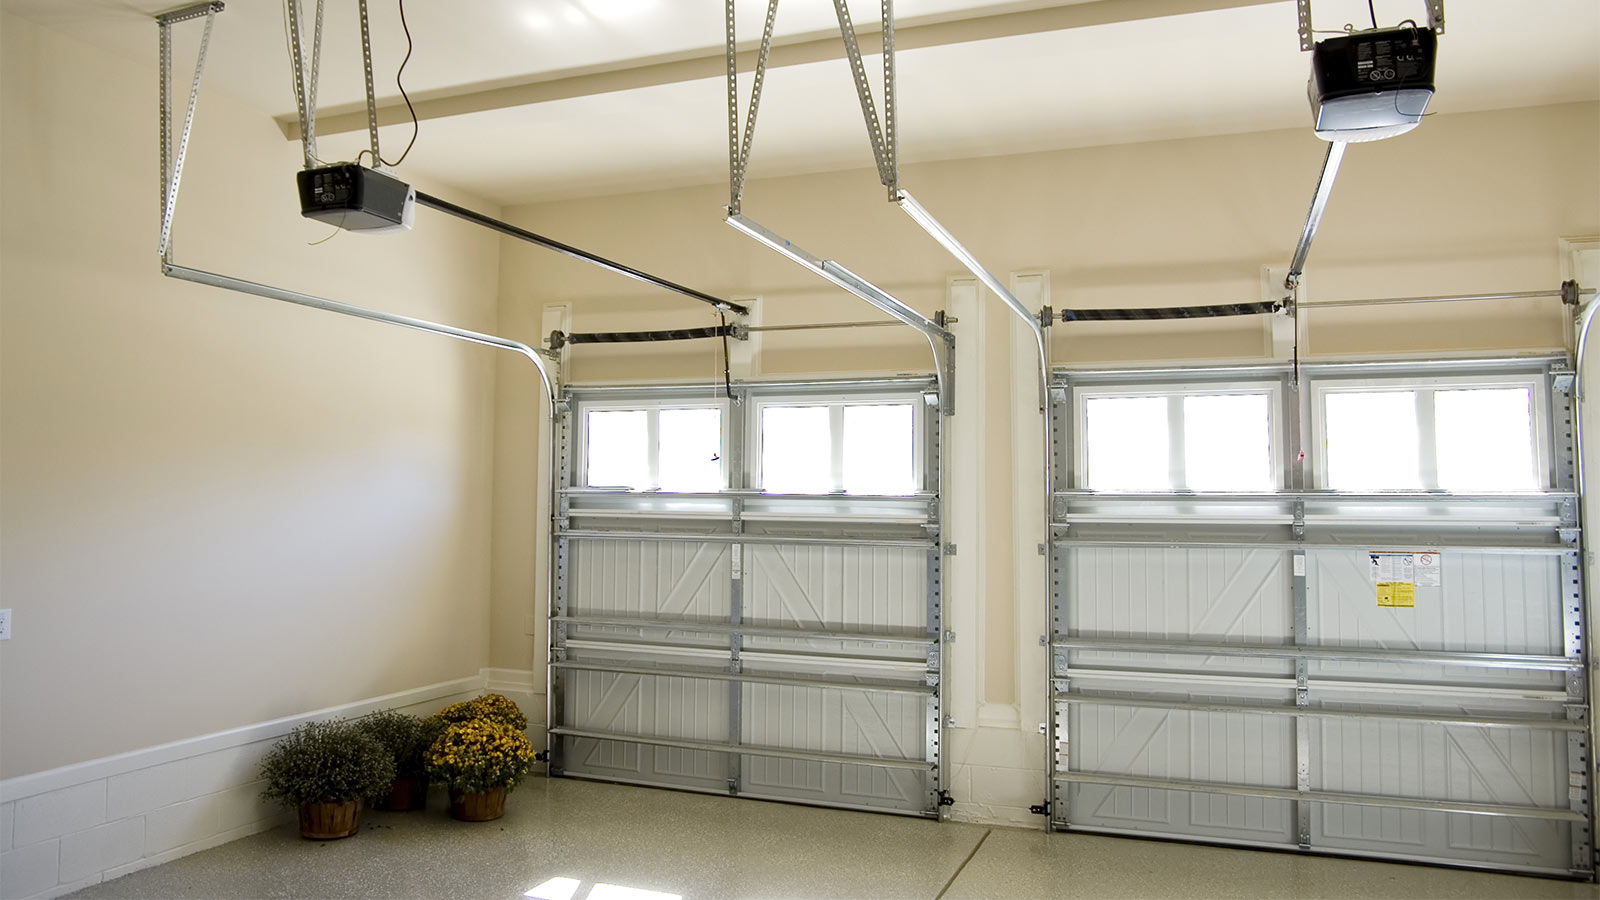 Sectional Garage Doors from Sectional Garage Doors Chelmsford suppliers.